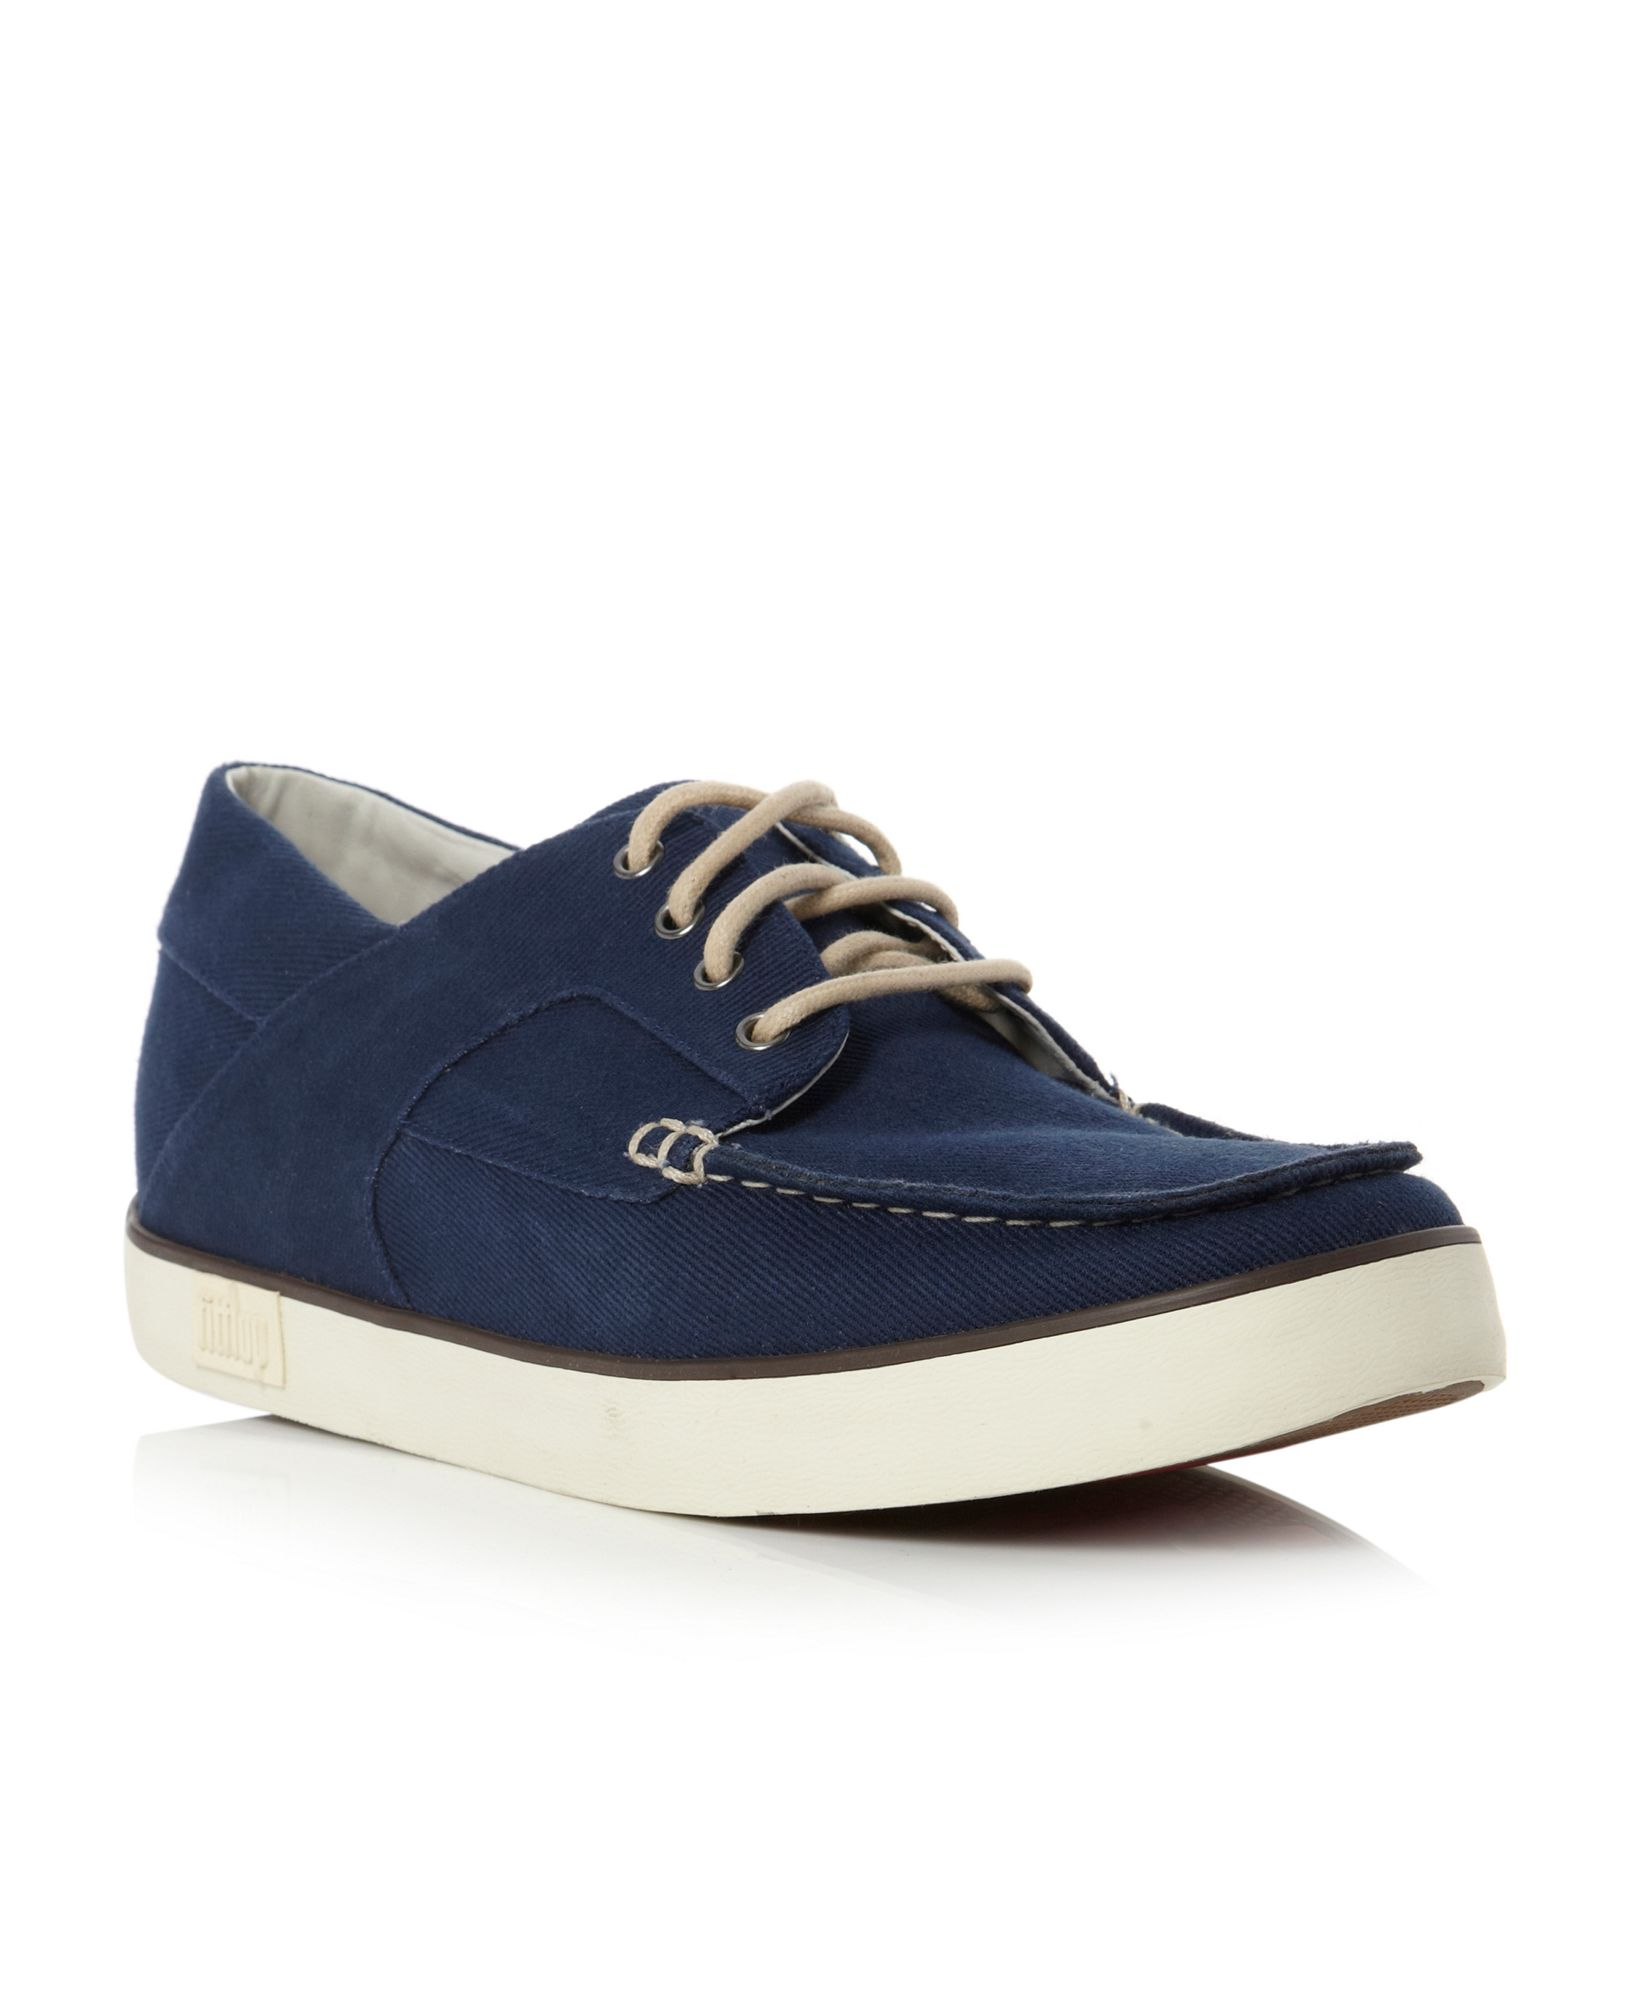 66cd5ccb995e69 Fitflop Mens Monty Canvas Boat Shoes